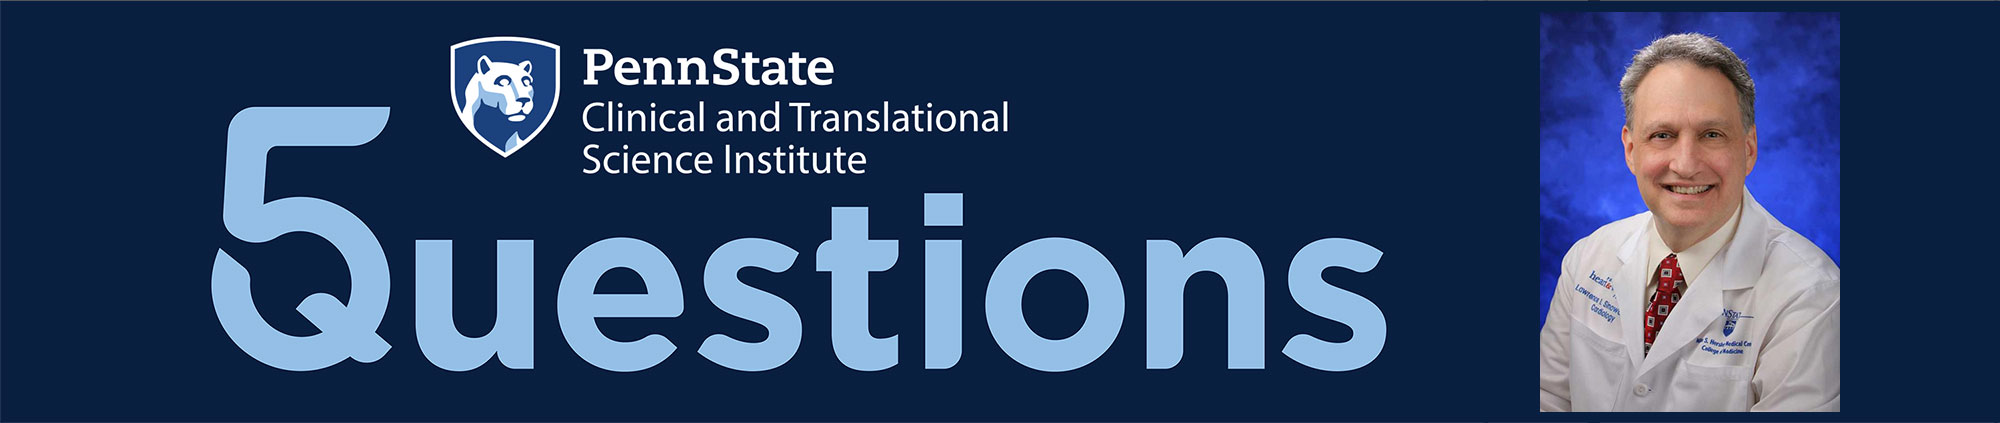 The logo for Penn State Clinical and Translational Science Institute 5 Questions series and a head-and-shoulders professional photo of Dr. Larry Sinoway are seen next to each other.